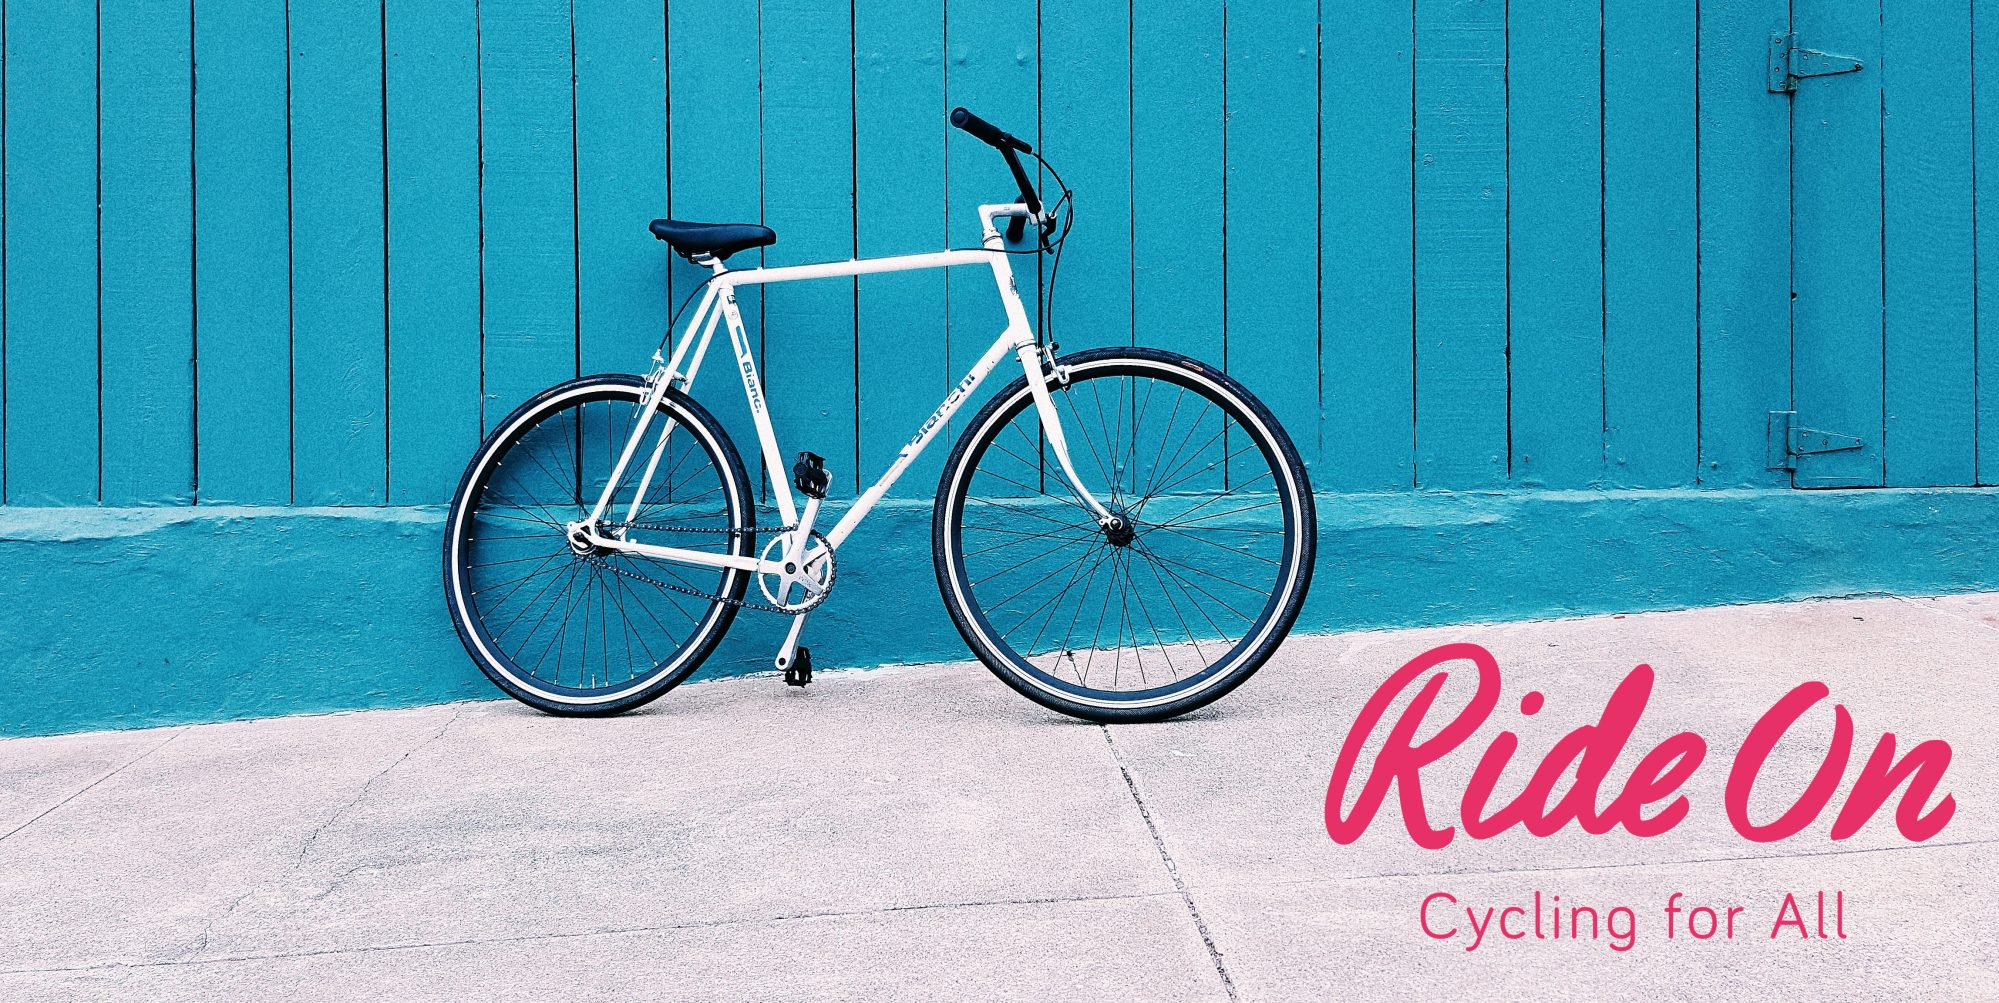 Buy a recycled second hand bike | Ride On - Cycling for all